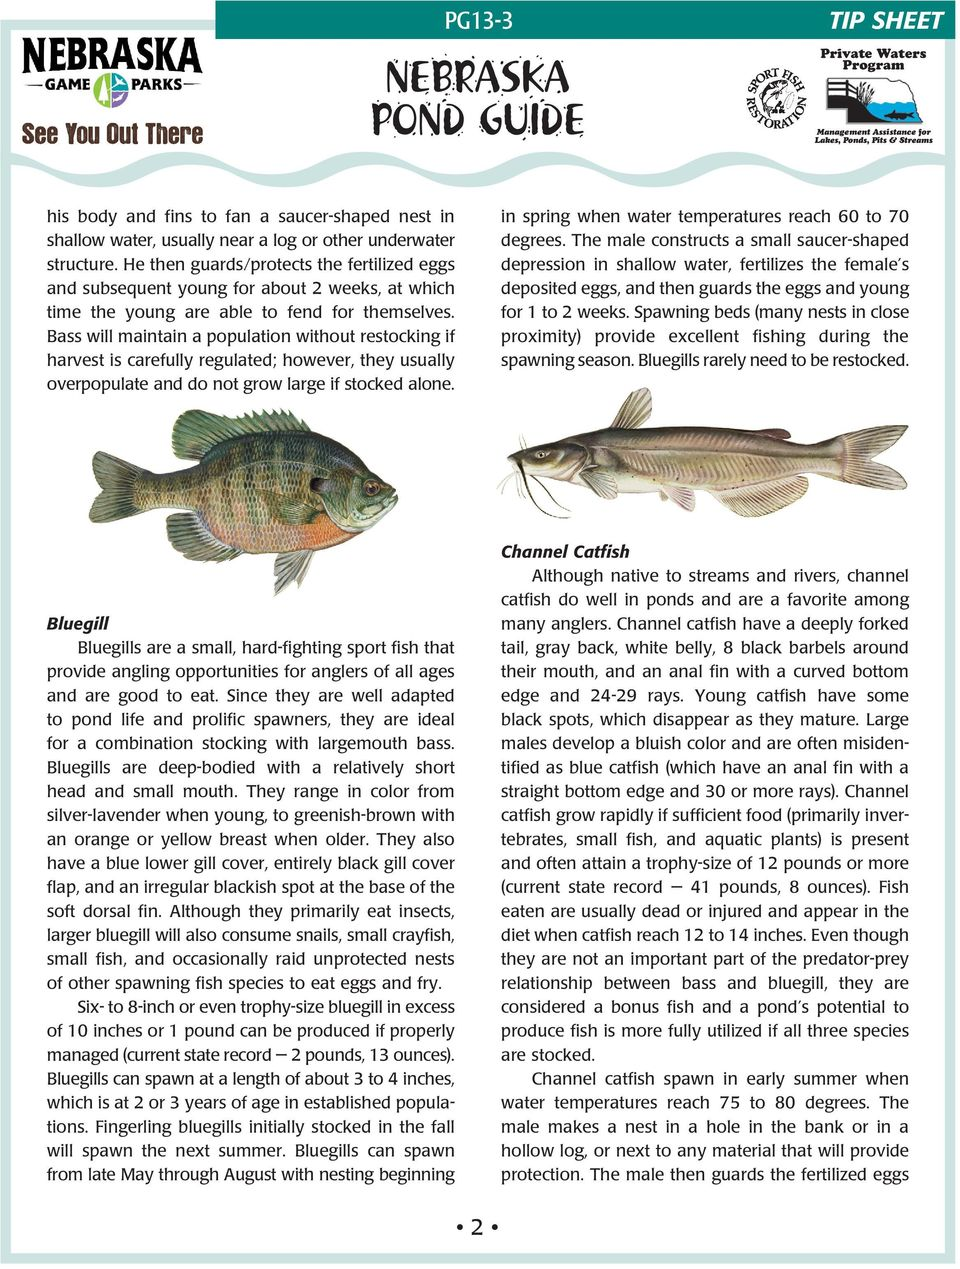 Bass will maintain a population without restocking if harvest is carefully regulated; however, they usually overpopulate and do not grow large if stocked alone.